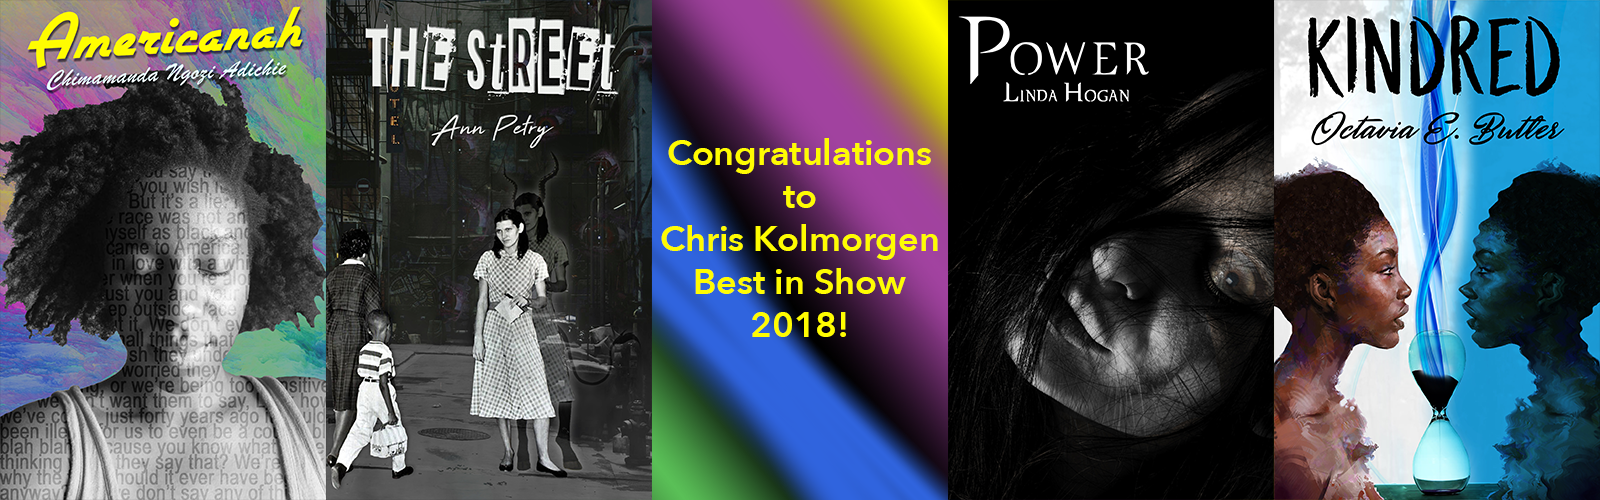 Hero Image: Congratulations to Chris Kolmorgen, Best in Show 2018!